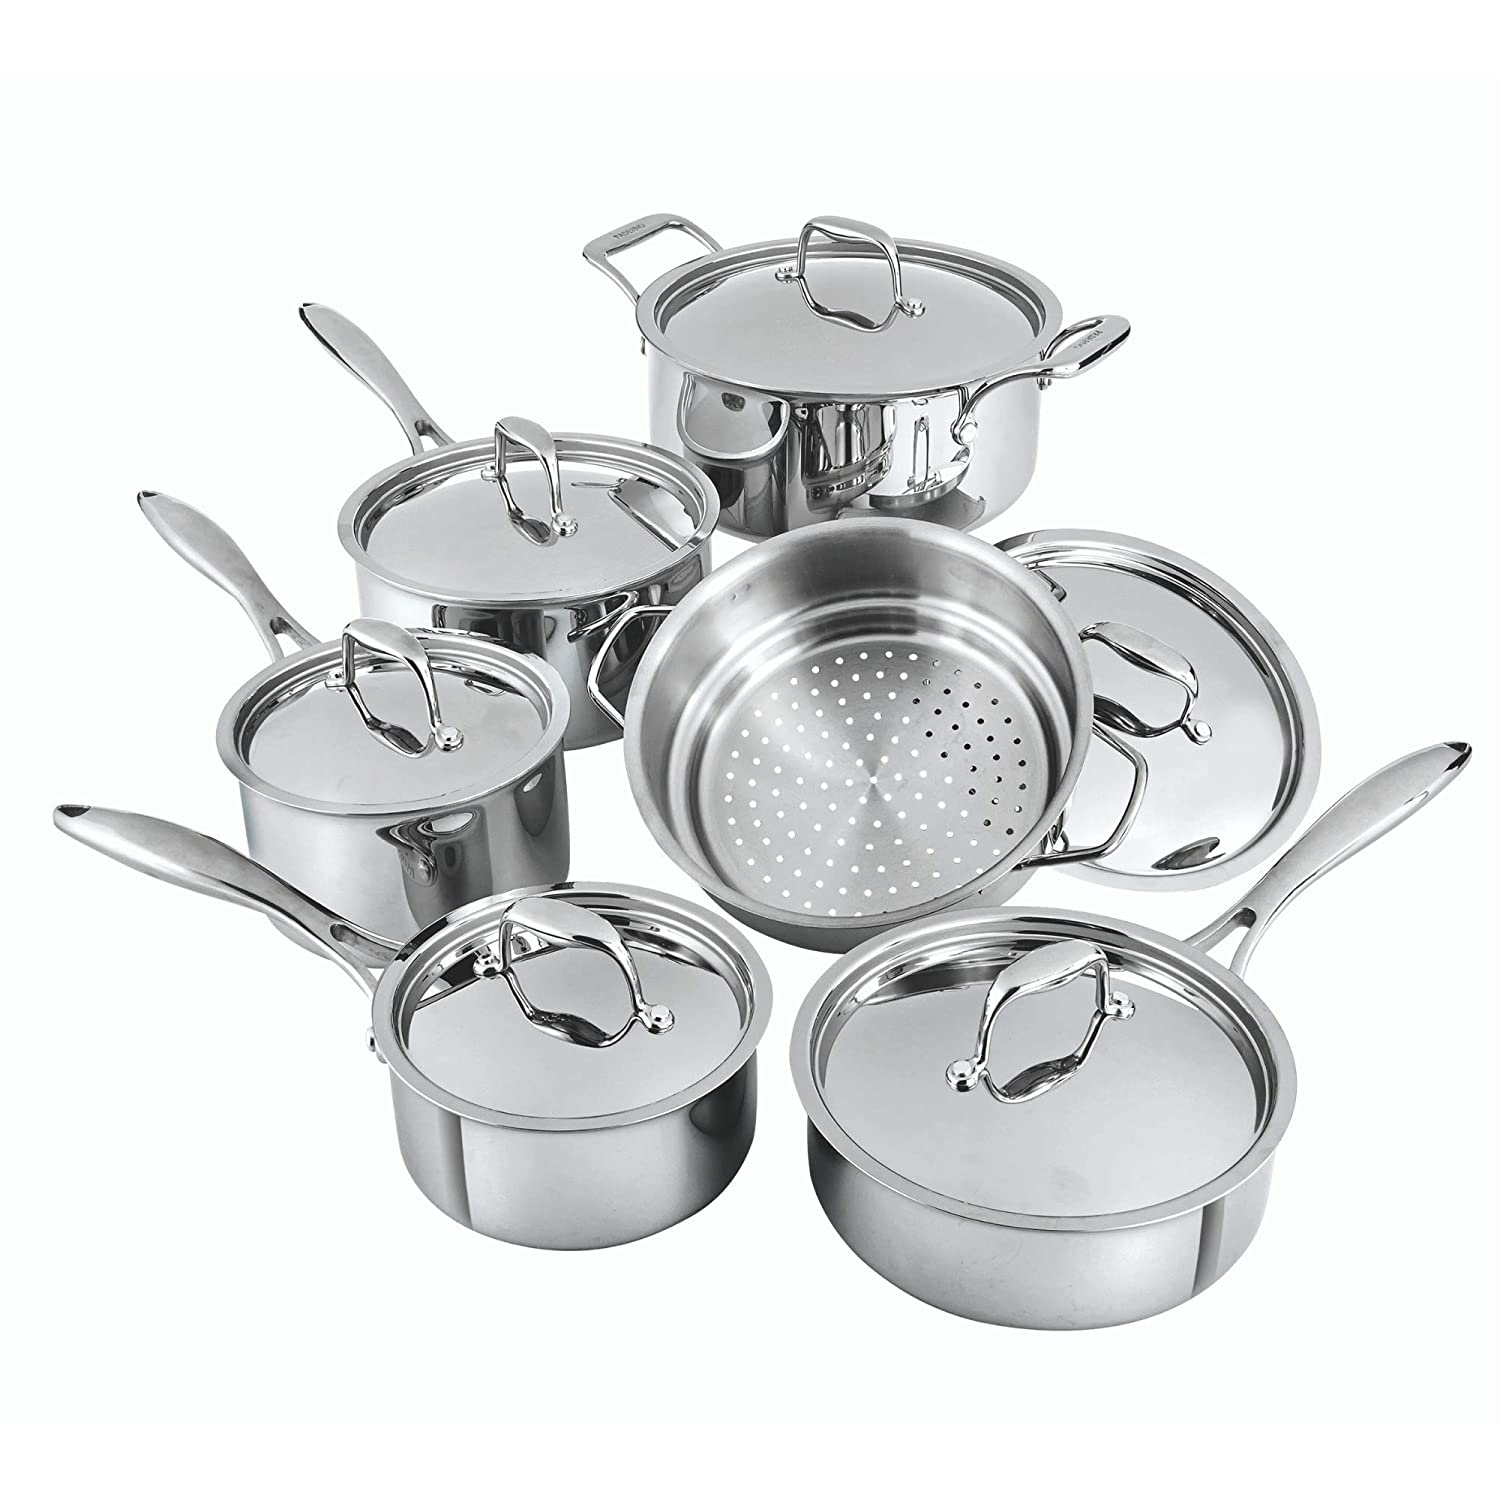 Paderno Canadian Professional 12-Piece Stainless-Steel Clad Cookware Set   Kitchen Pots and Pans Set with Covered Steamer